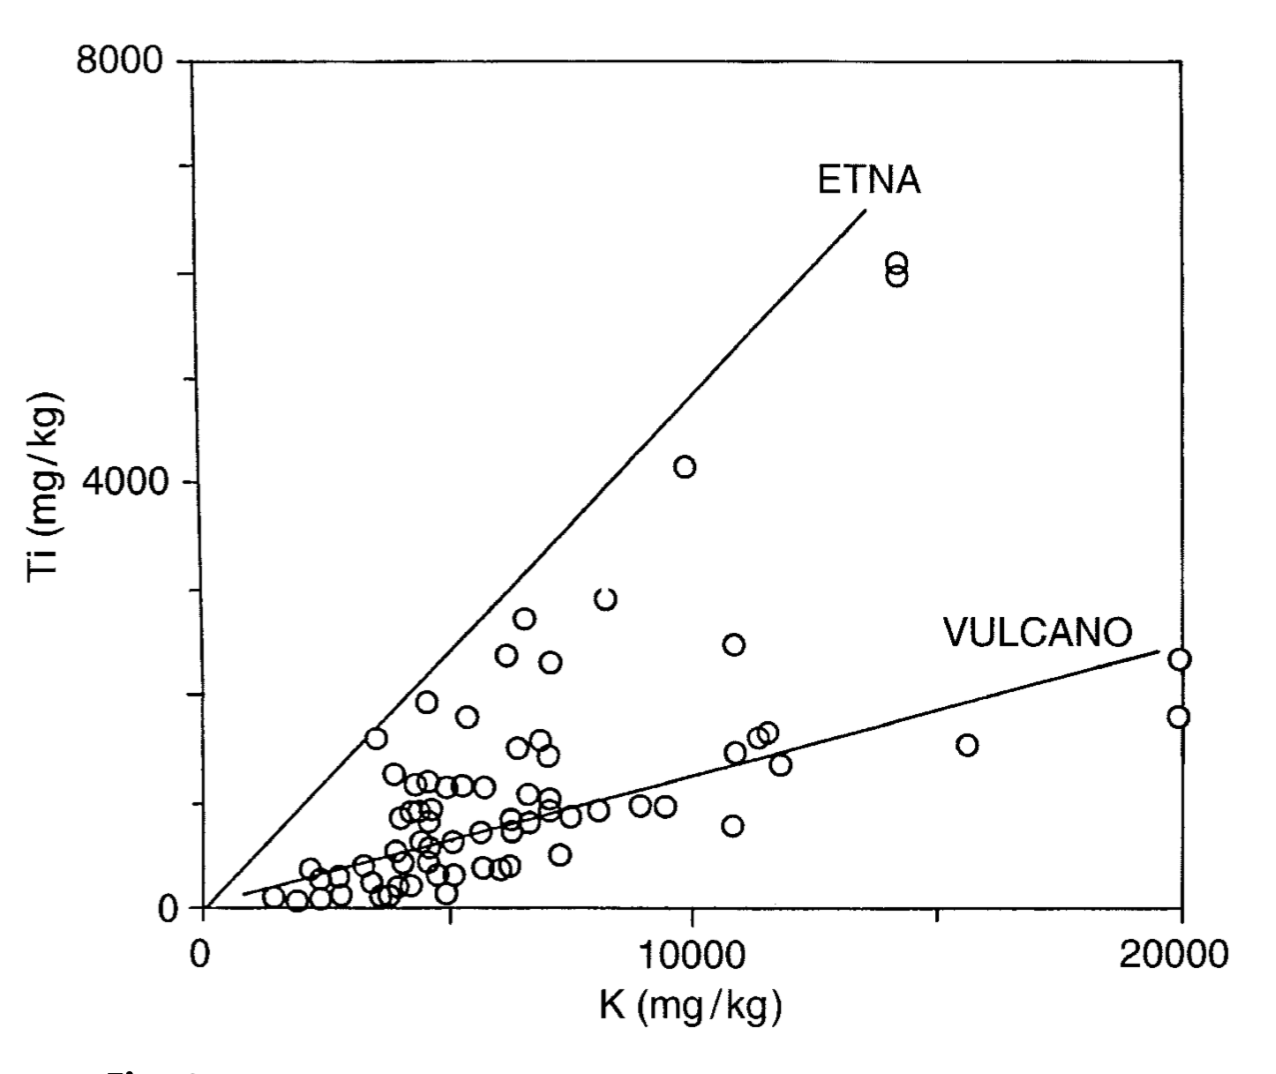 Potassium and Titanium content in Lichens growing around different volcanic areas.  Grasso et. al 1998.